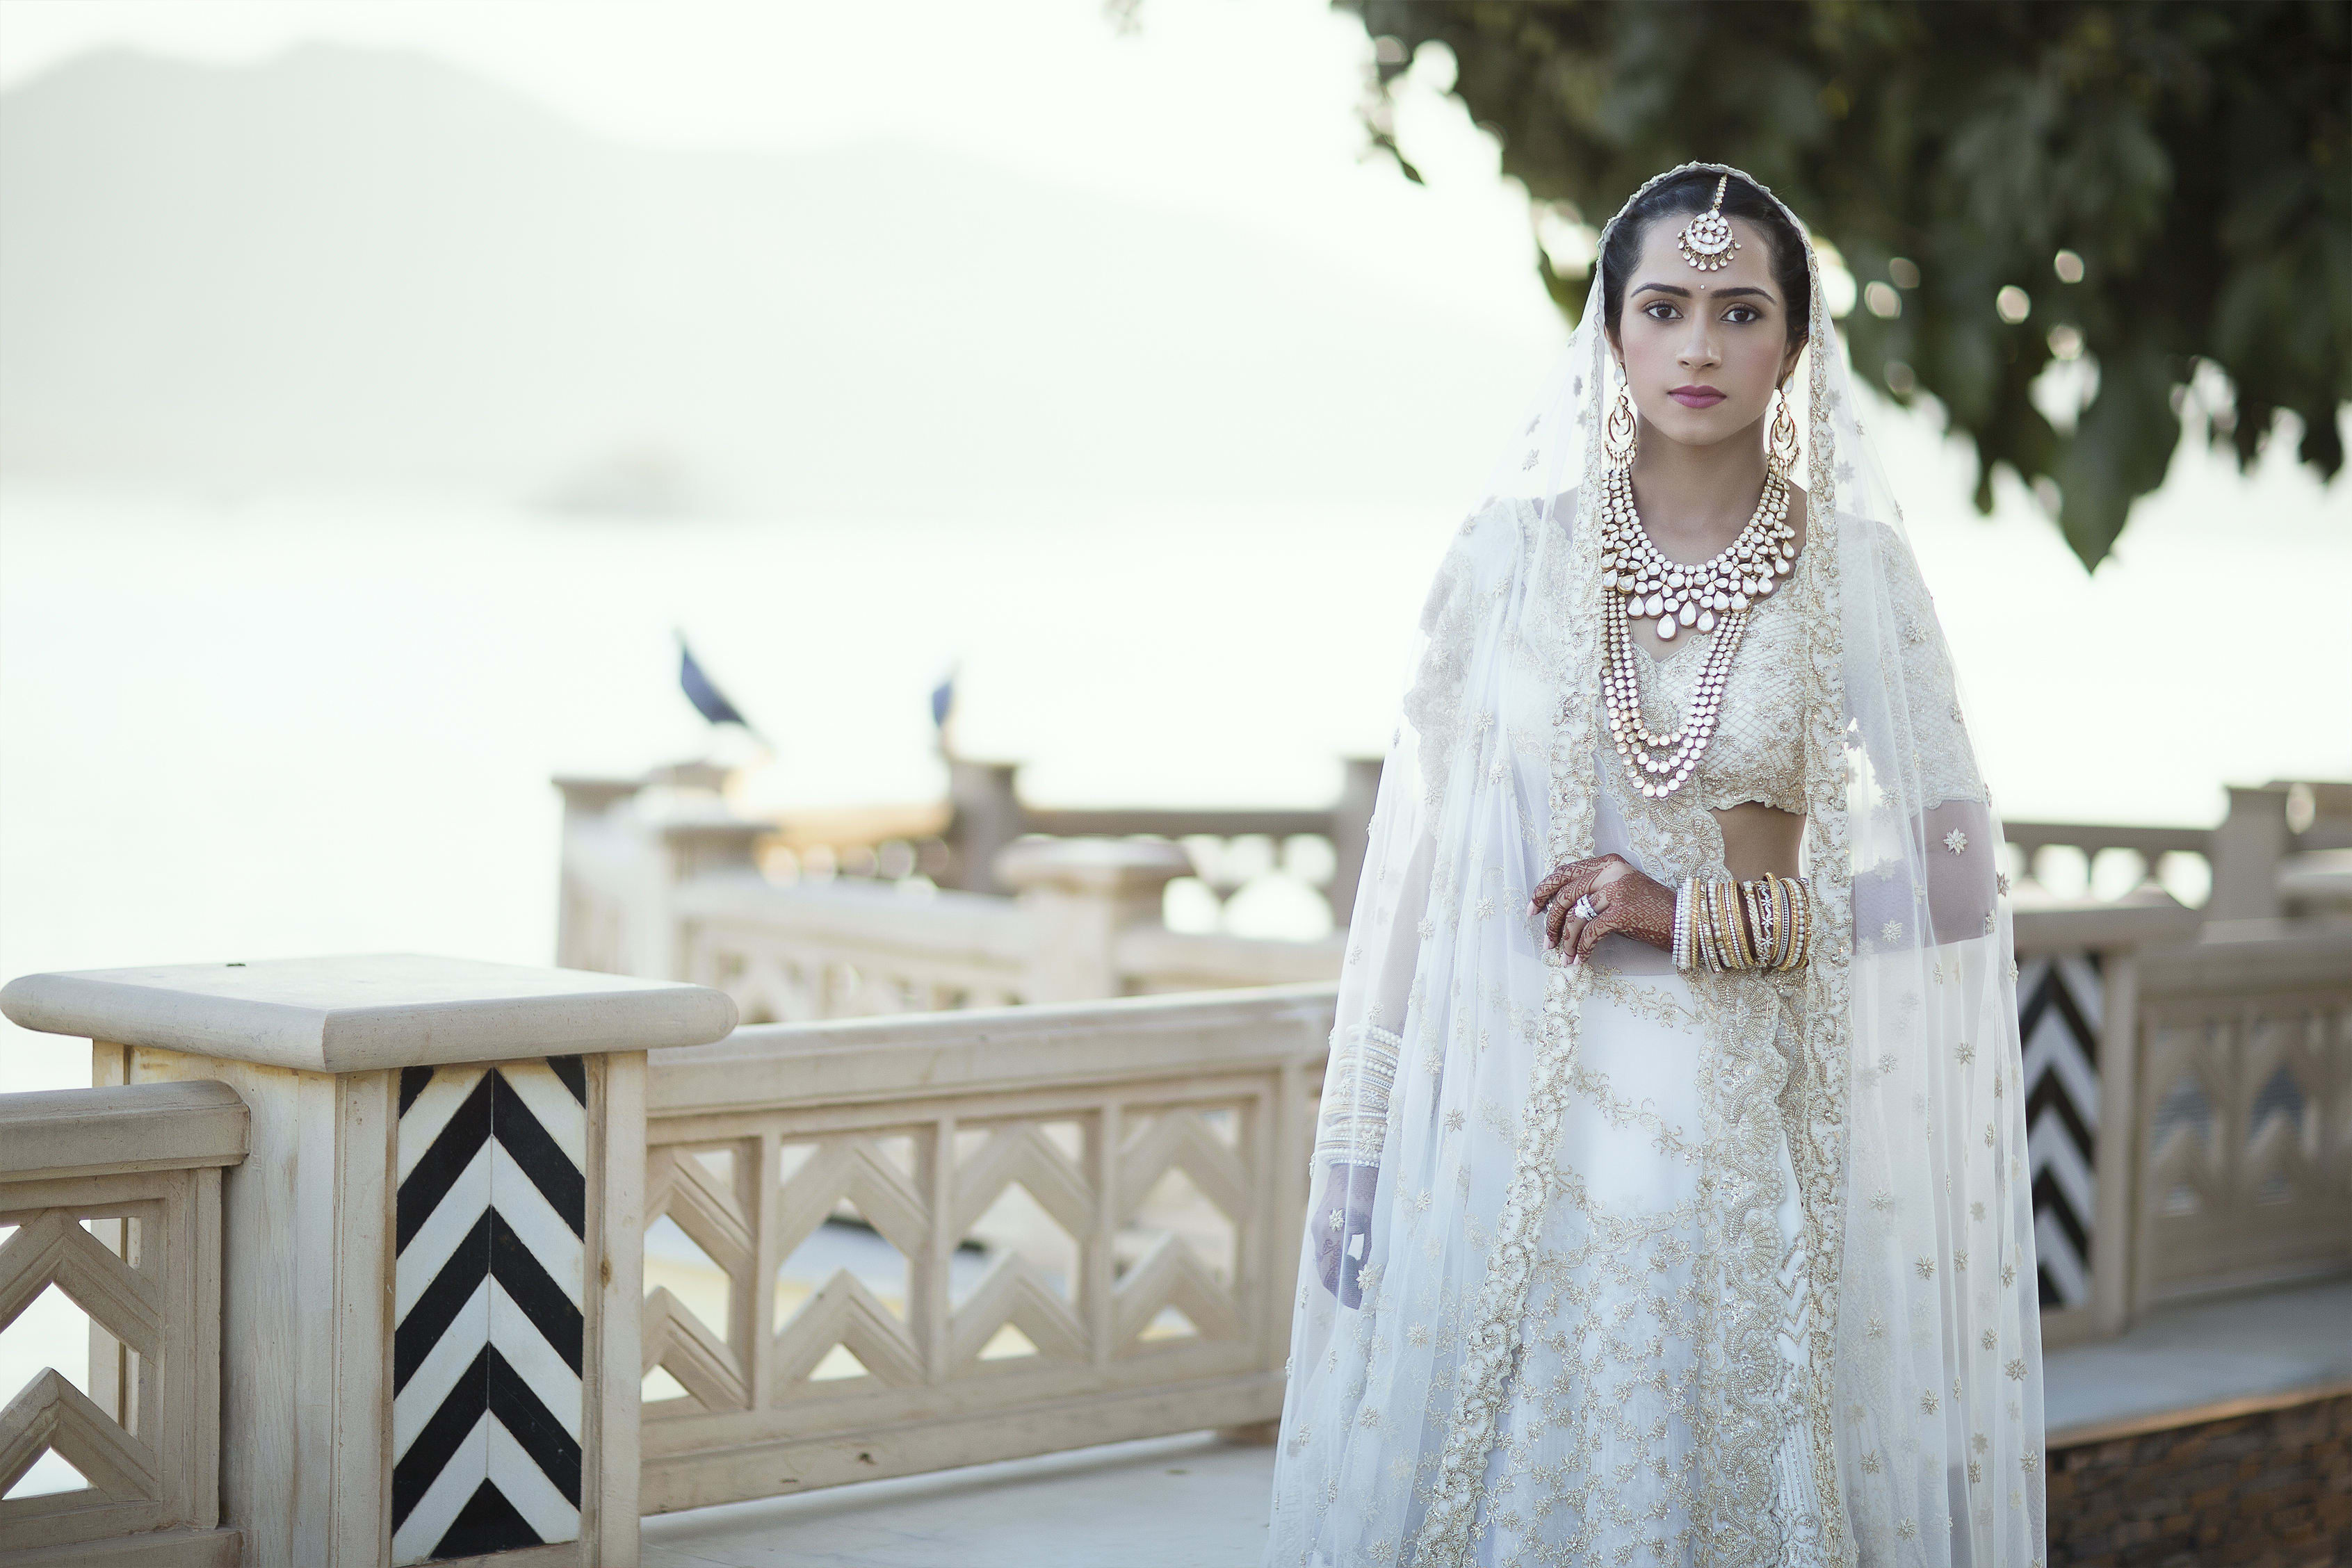 the royal bride!:tribhovandas bhimji zaveri ltd., namrata soni makup artist